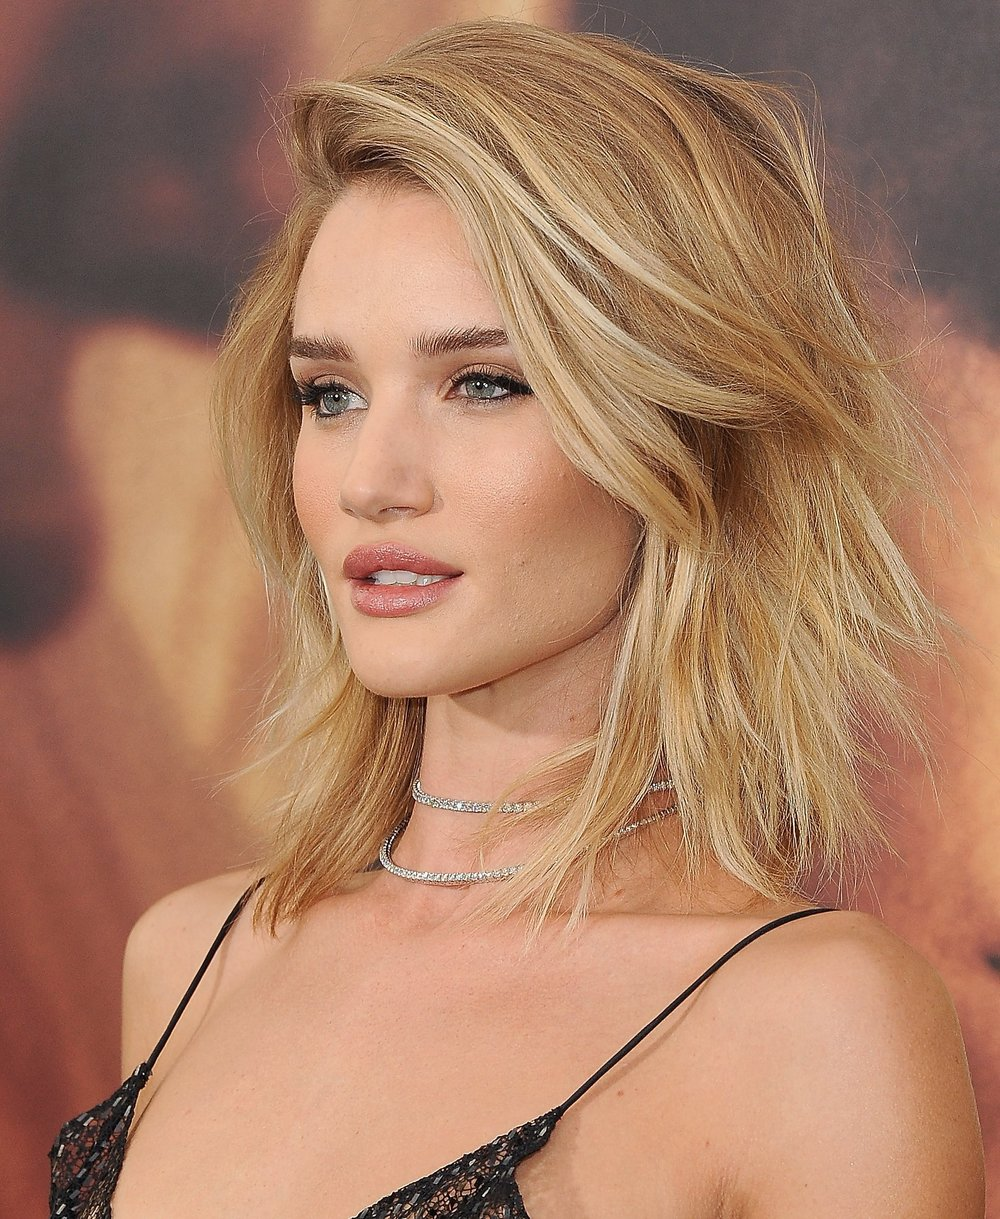 Celebrity inspiration: Rosie Huntington-Whiteley